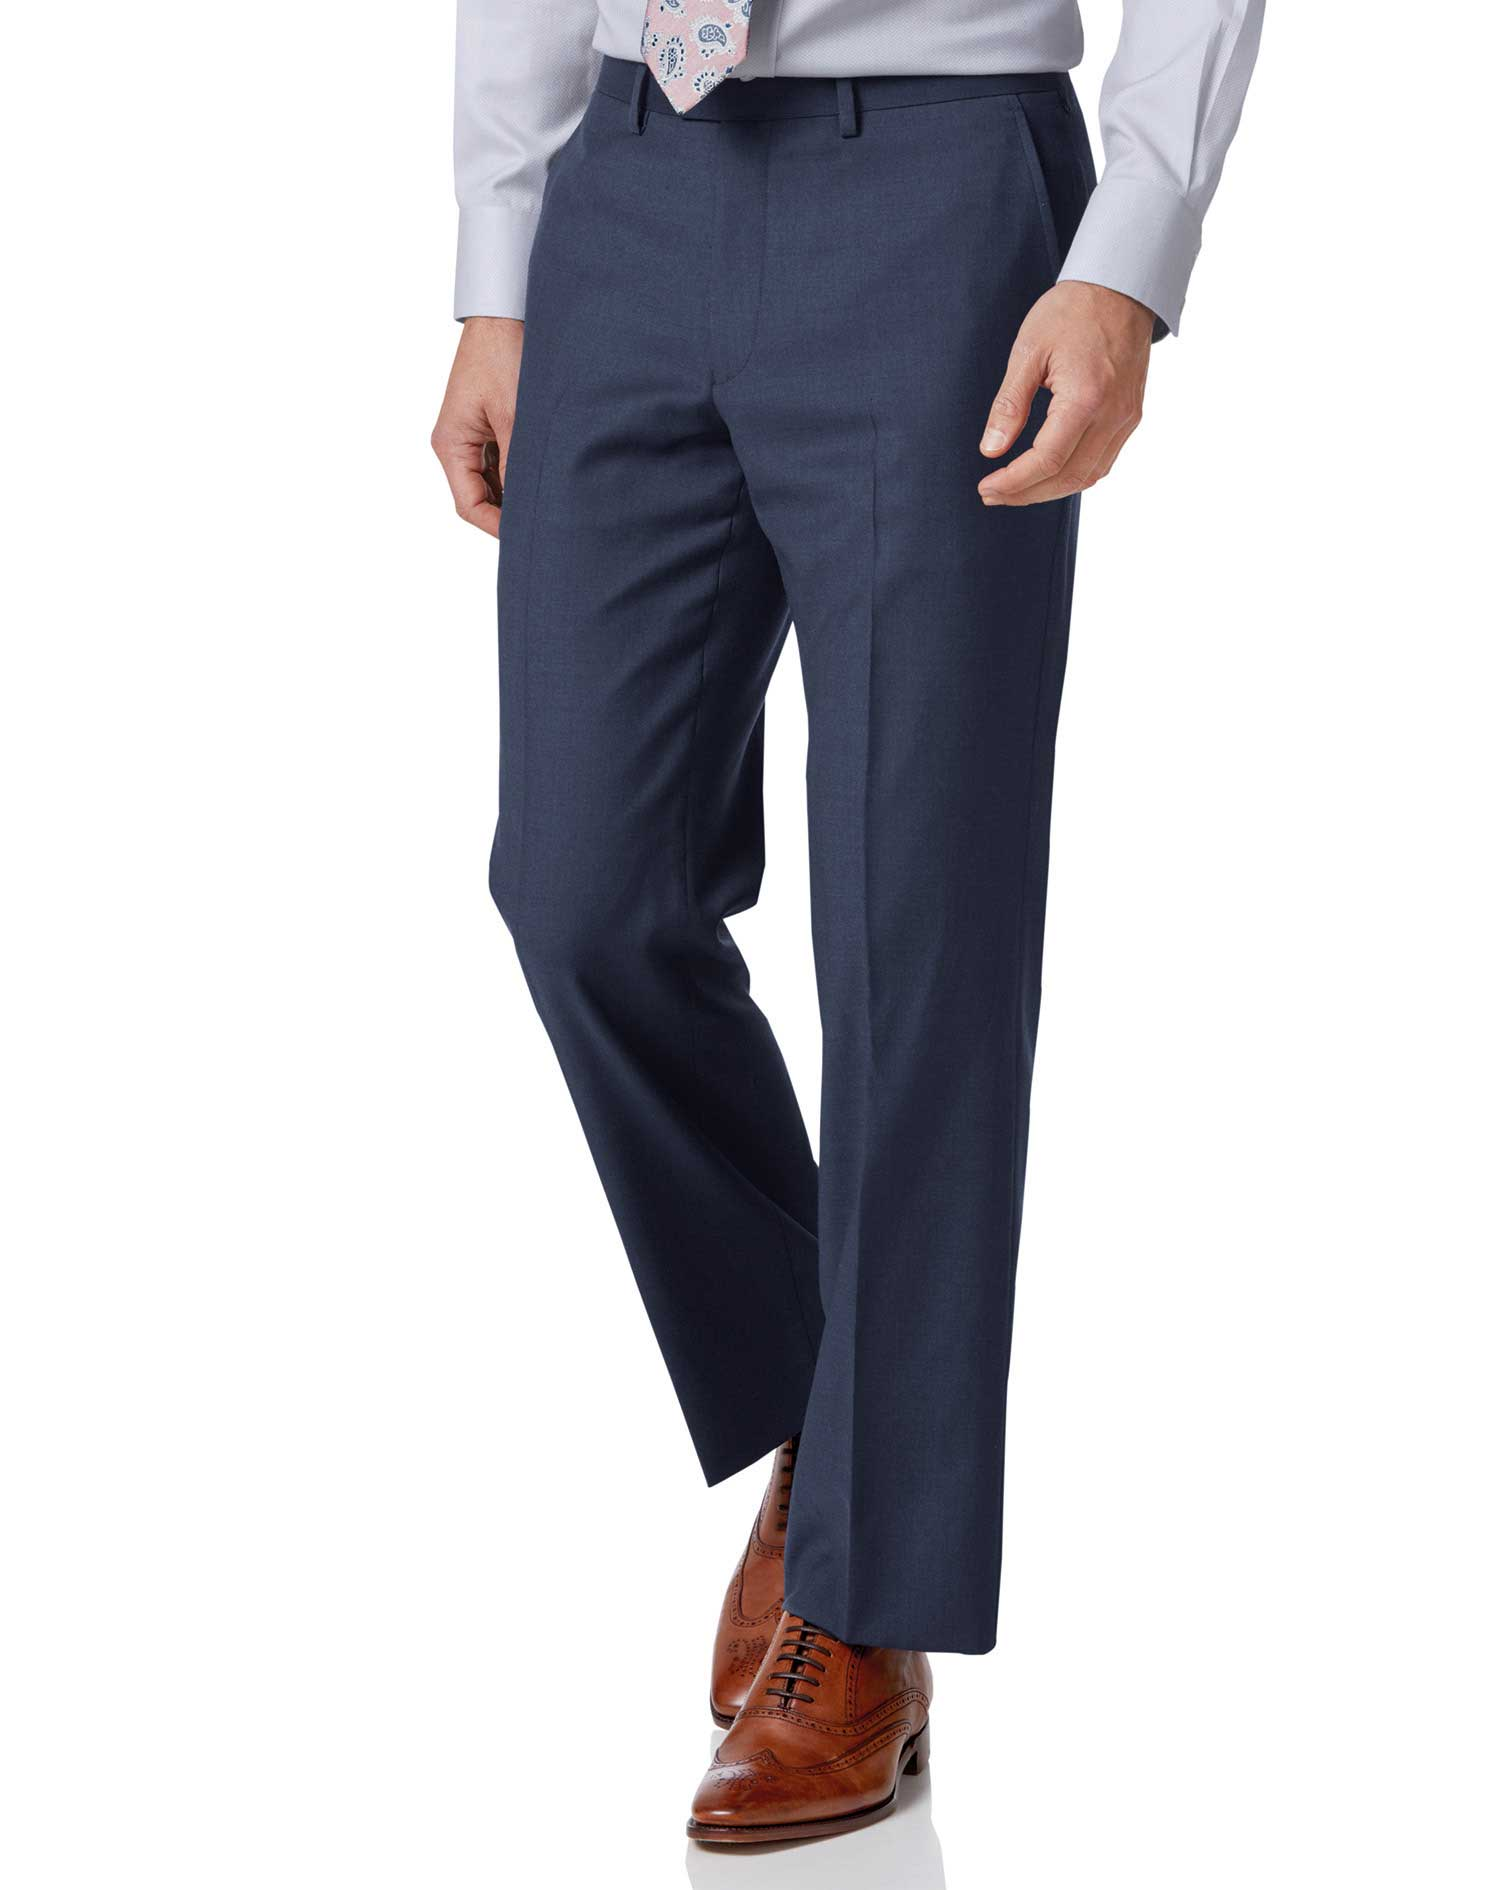 Mid Blue Classic Fit Twill Business Suit Trousers Size W38 L32 by Charles Tyrwhitt